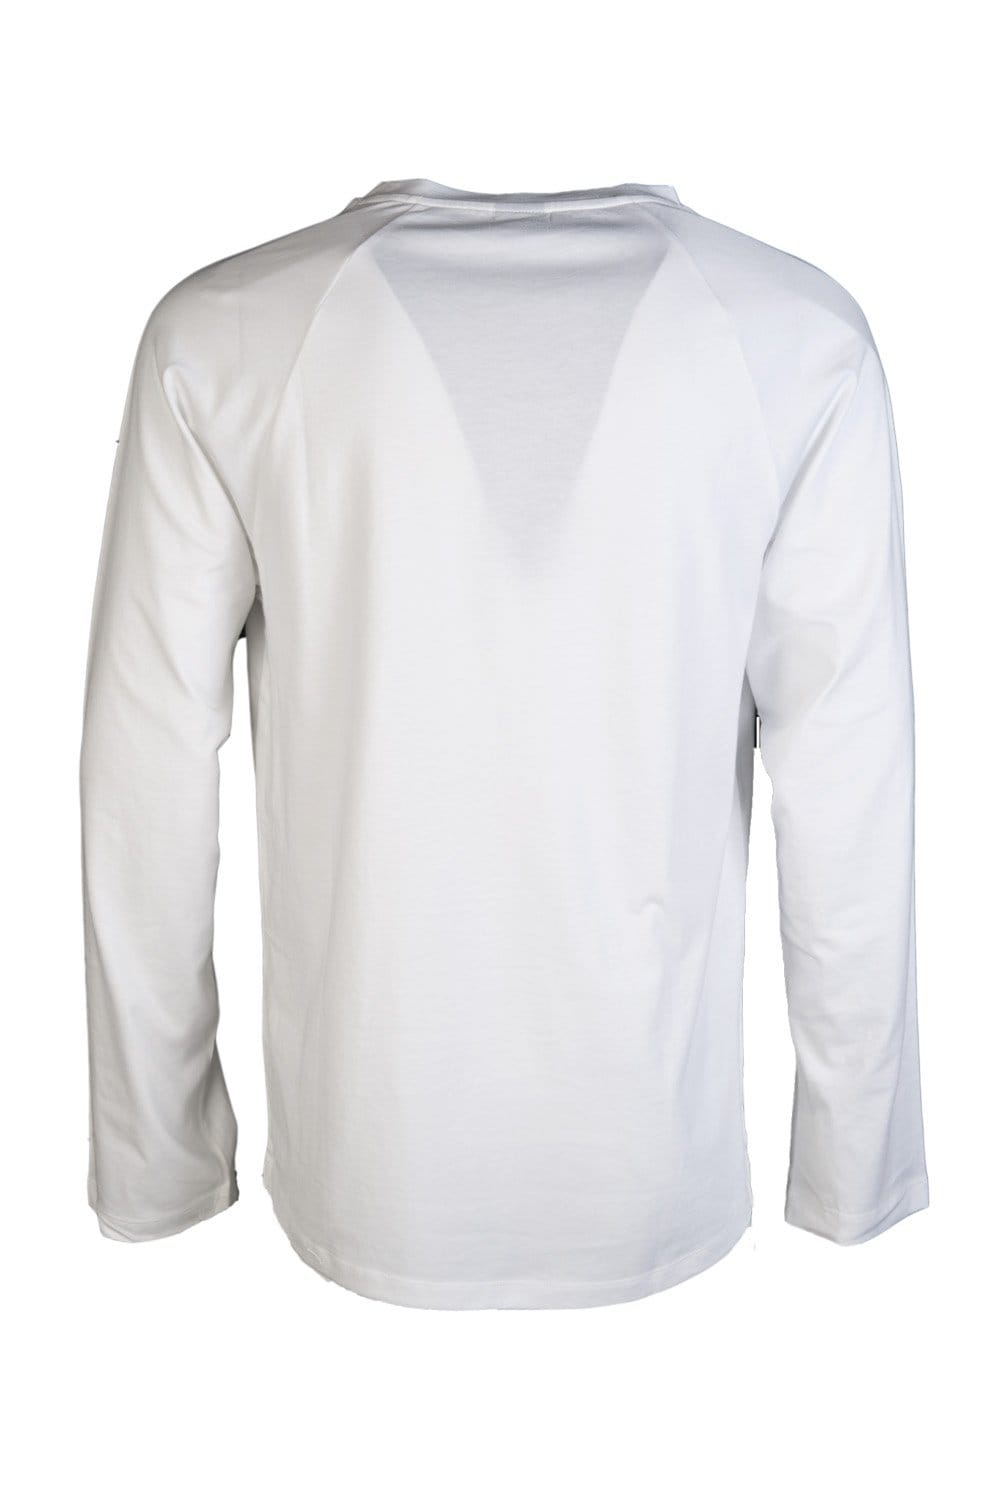 Hugo boss black long sleeve top in white and navy blue for Black and blue long sleeve shirt